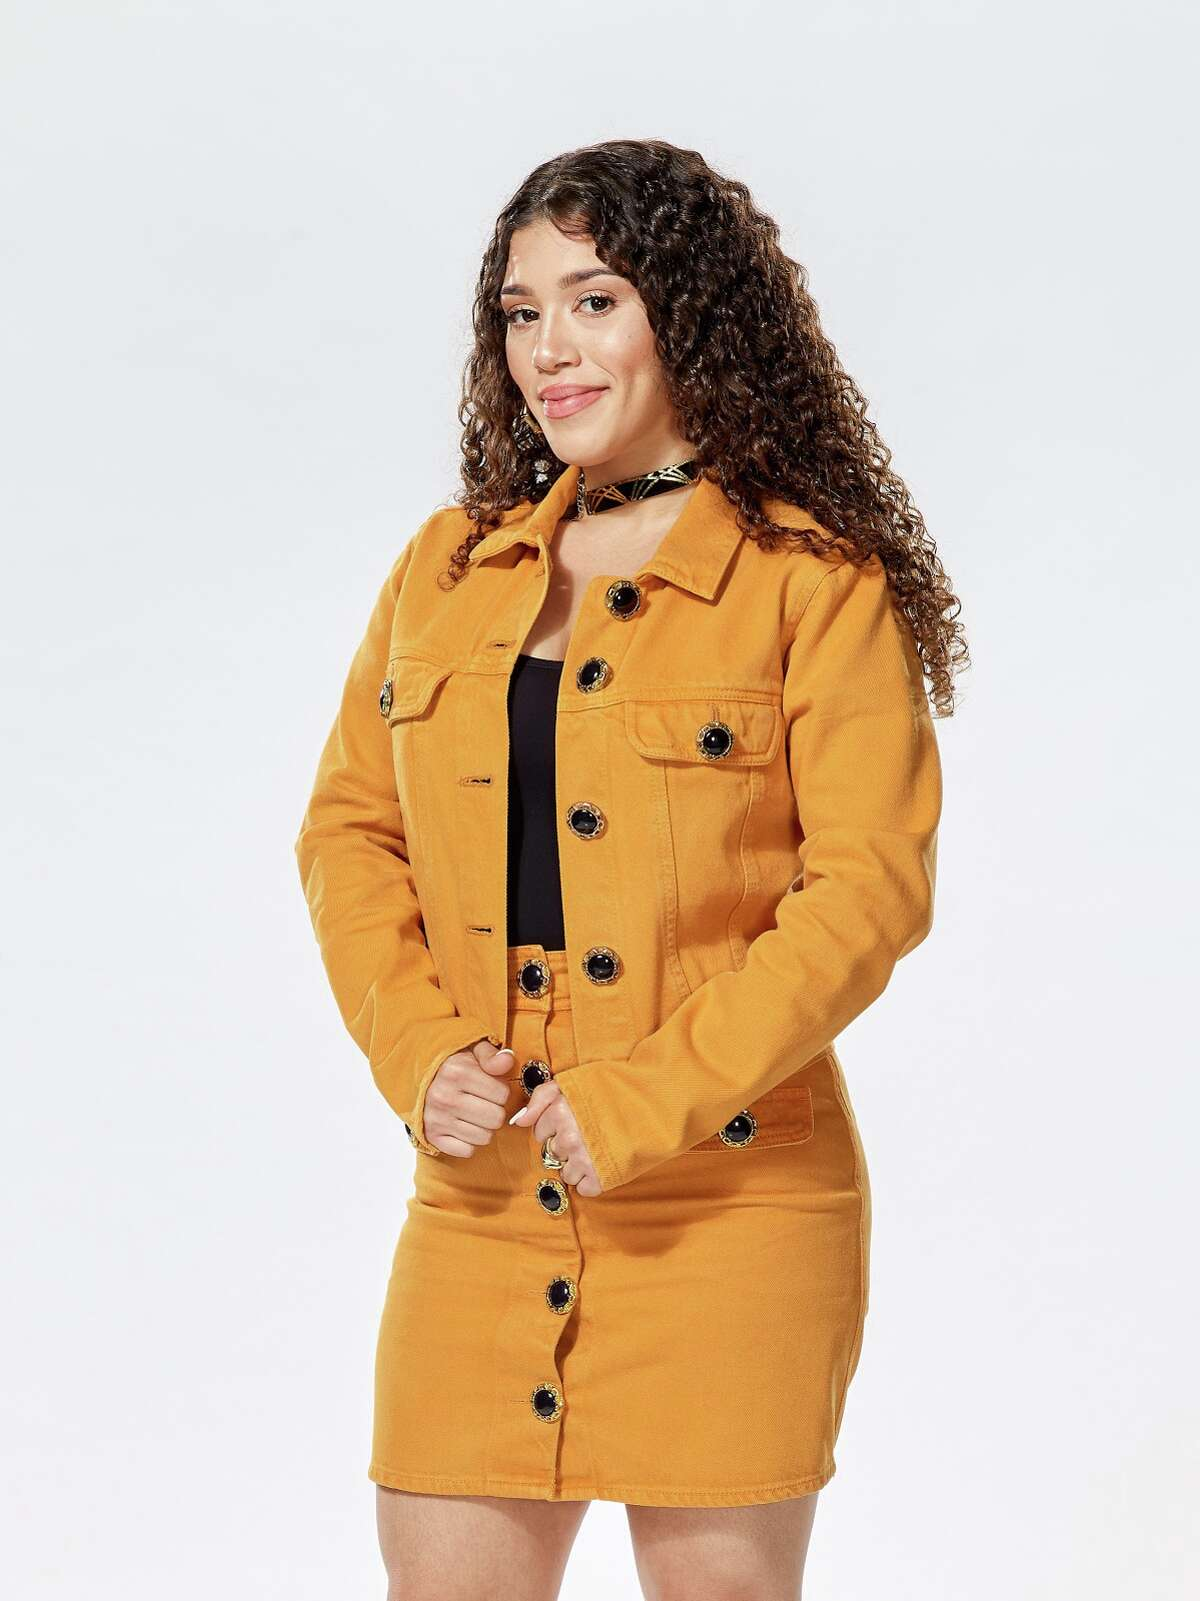 """Castillo, 24, started her journey on """"The Voice"""" last March."""